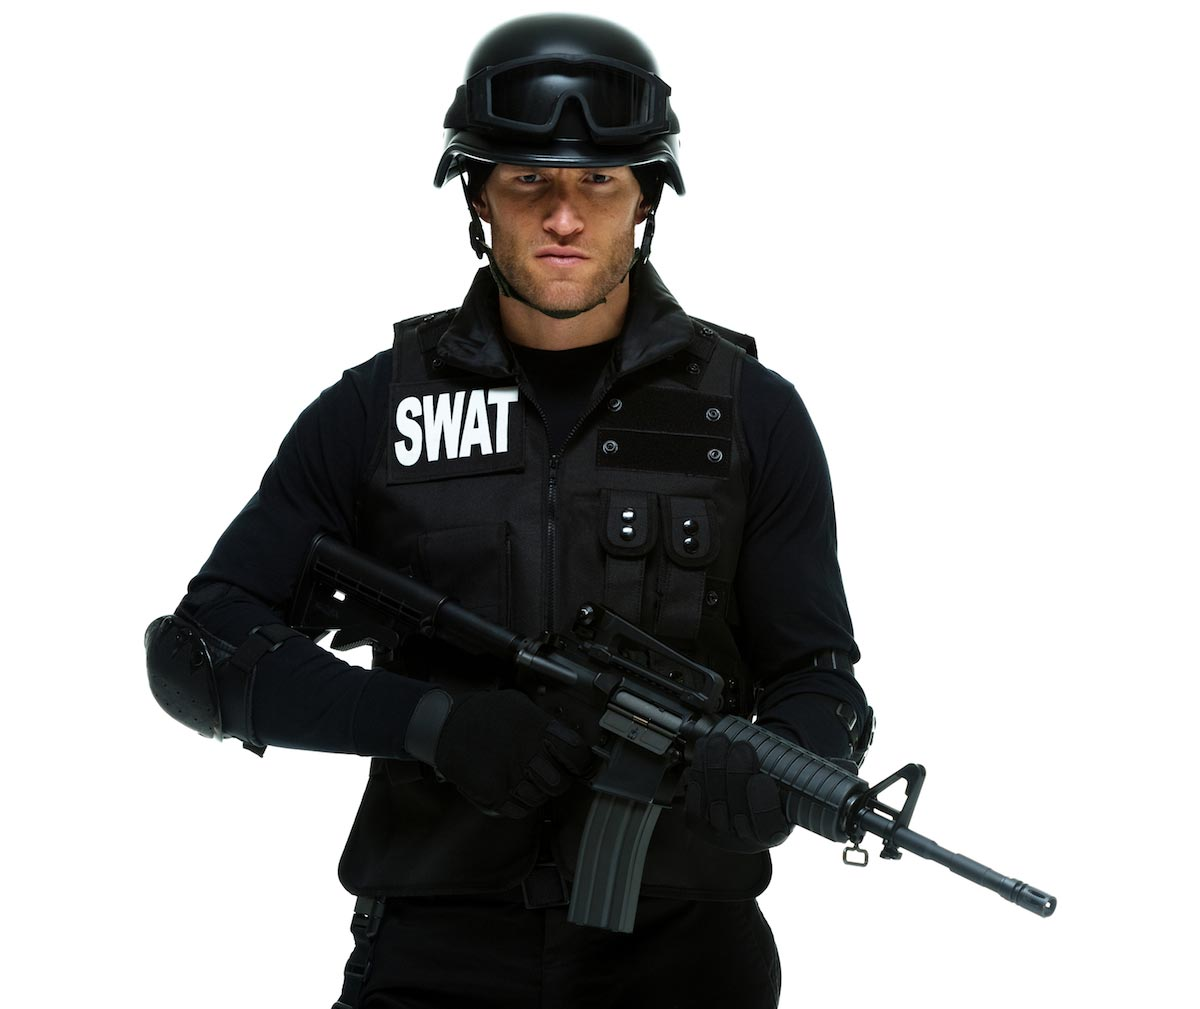 America S Police News: Why Are American Police Departments Stocking Up On Riot